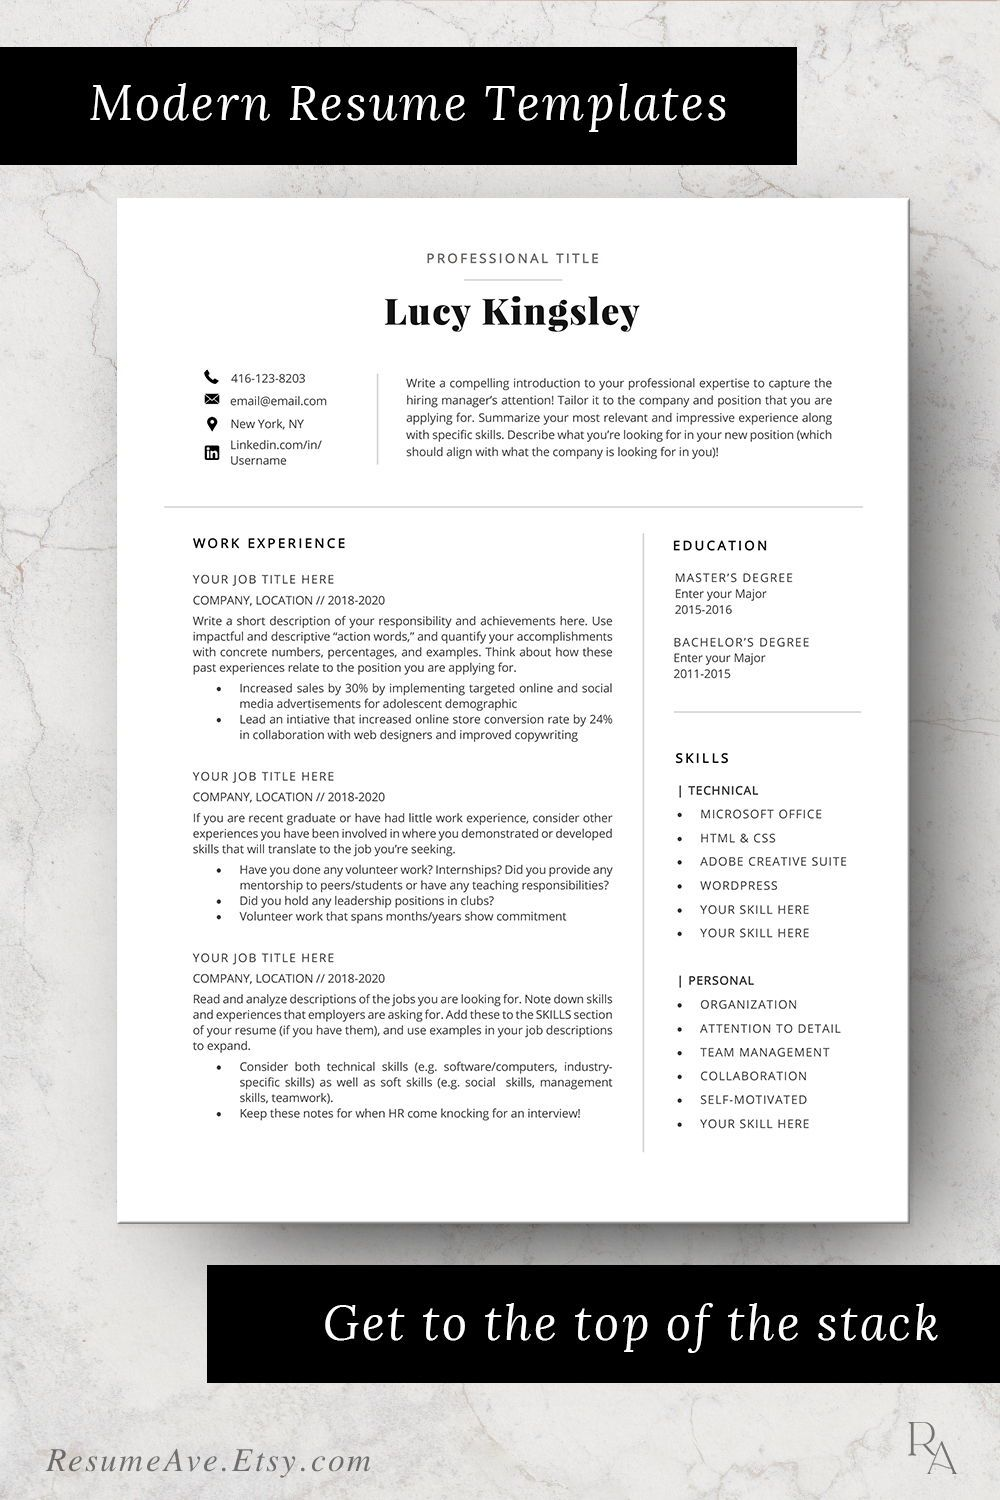 Professional executive resume template Word cv design with